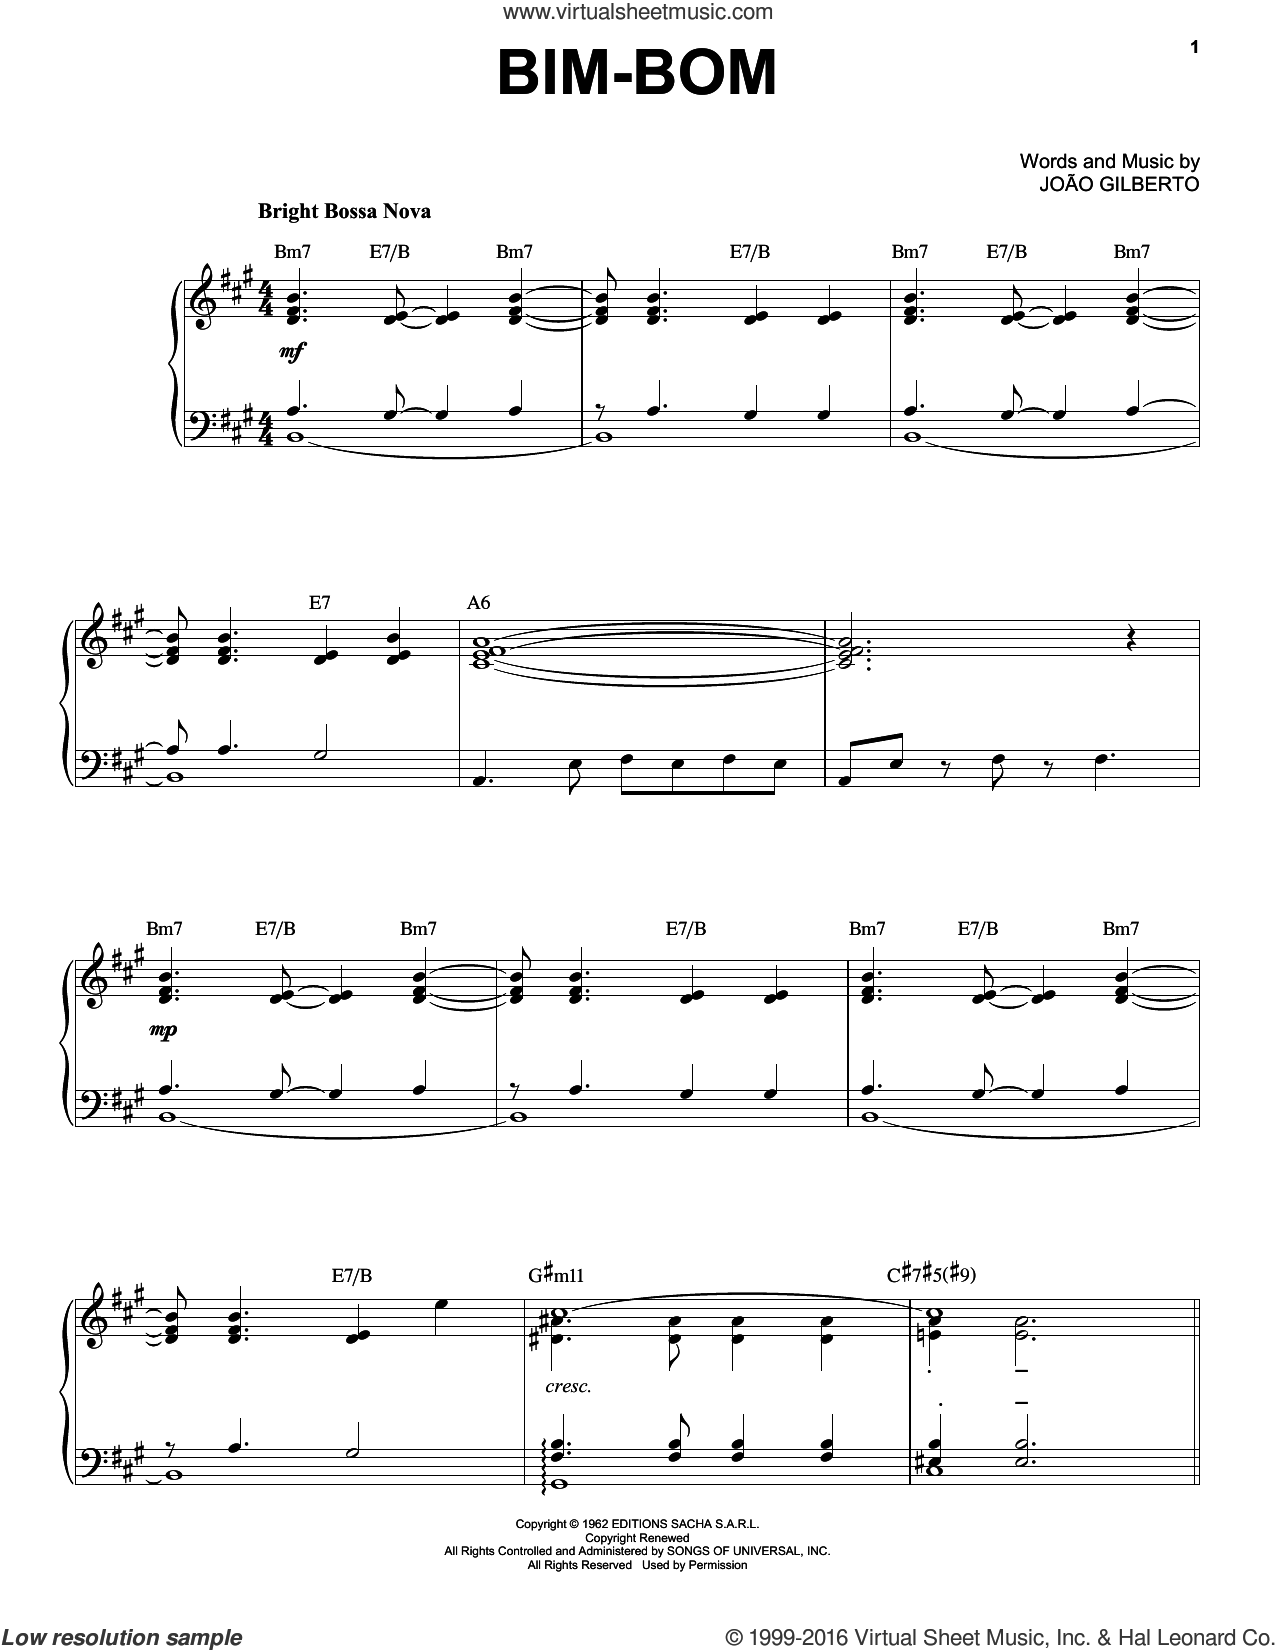 Bim-Bom sheet music for piano solo by Joao Gilberto. Score Image Preview.